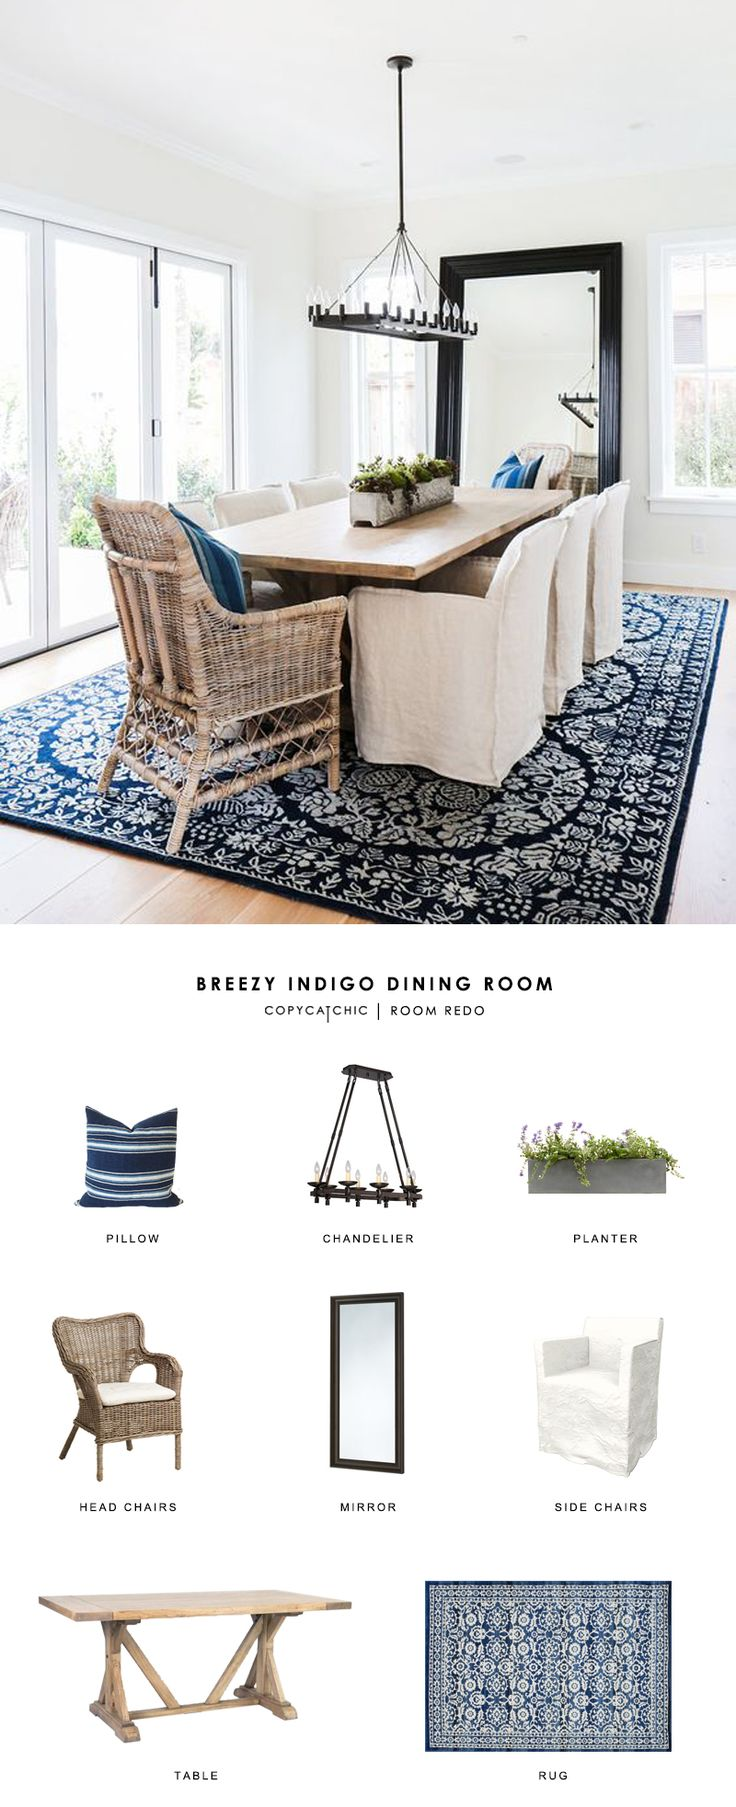 Copy Cat Chic Room Redo | Breezy Indigo Dining Room